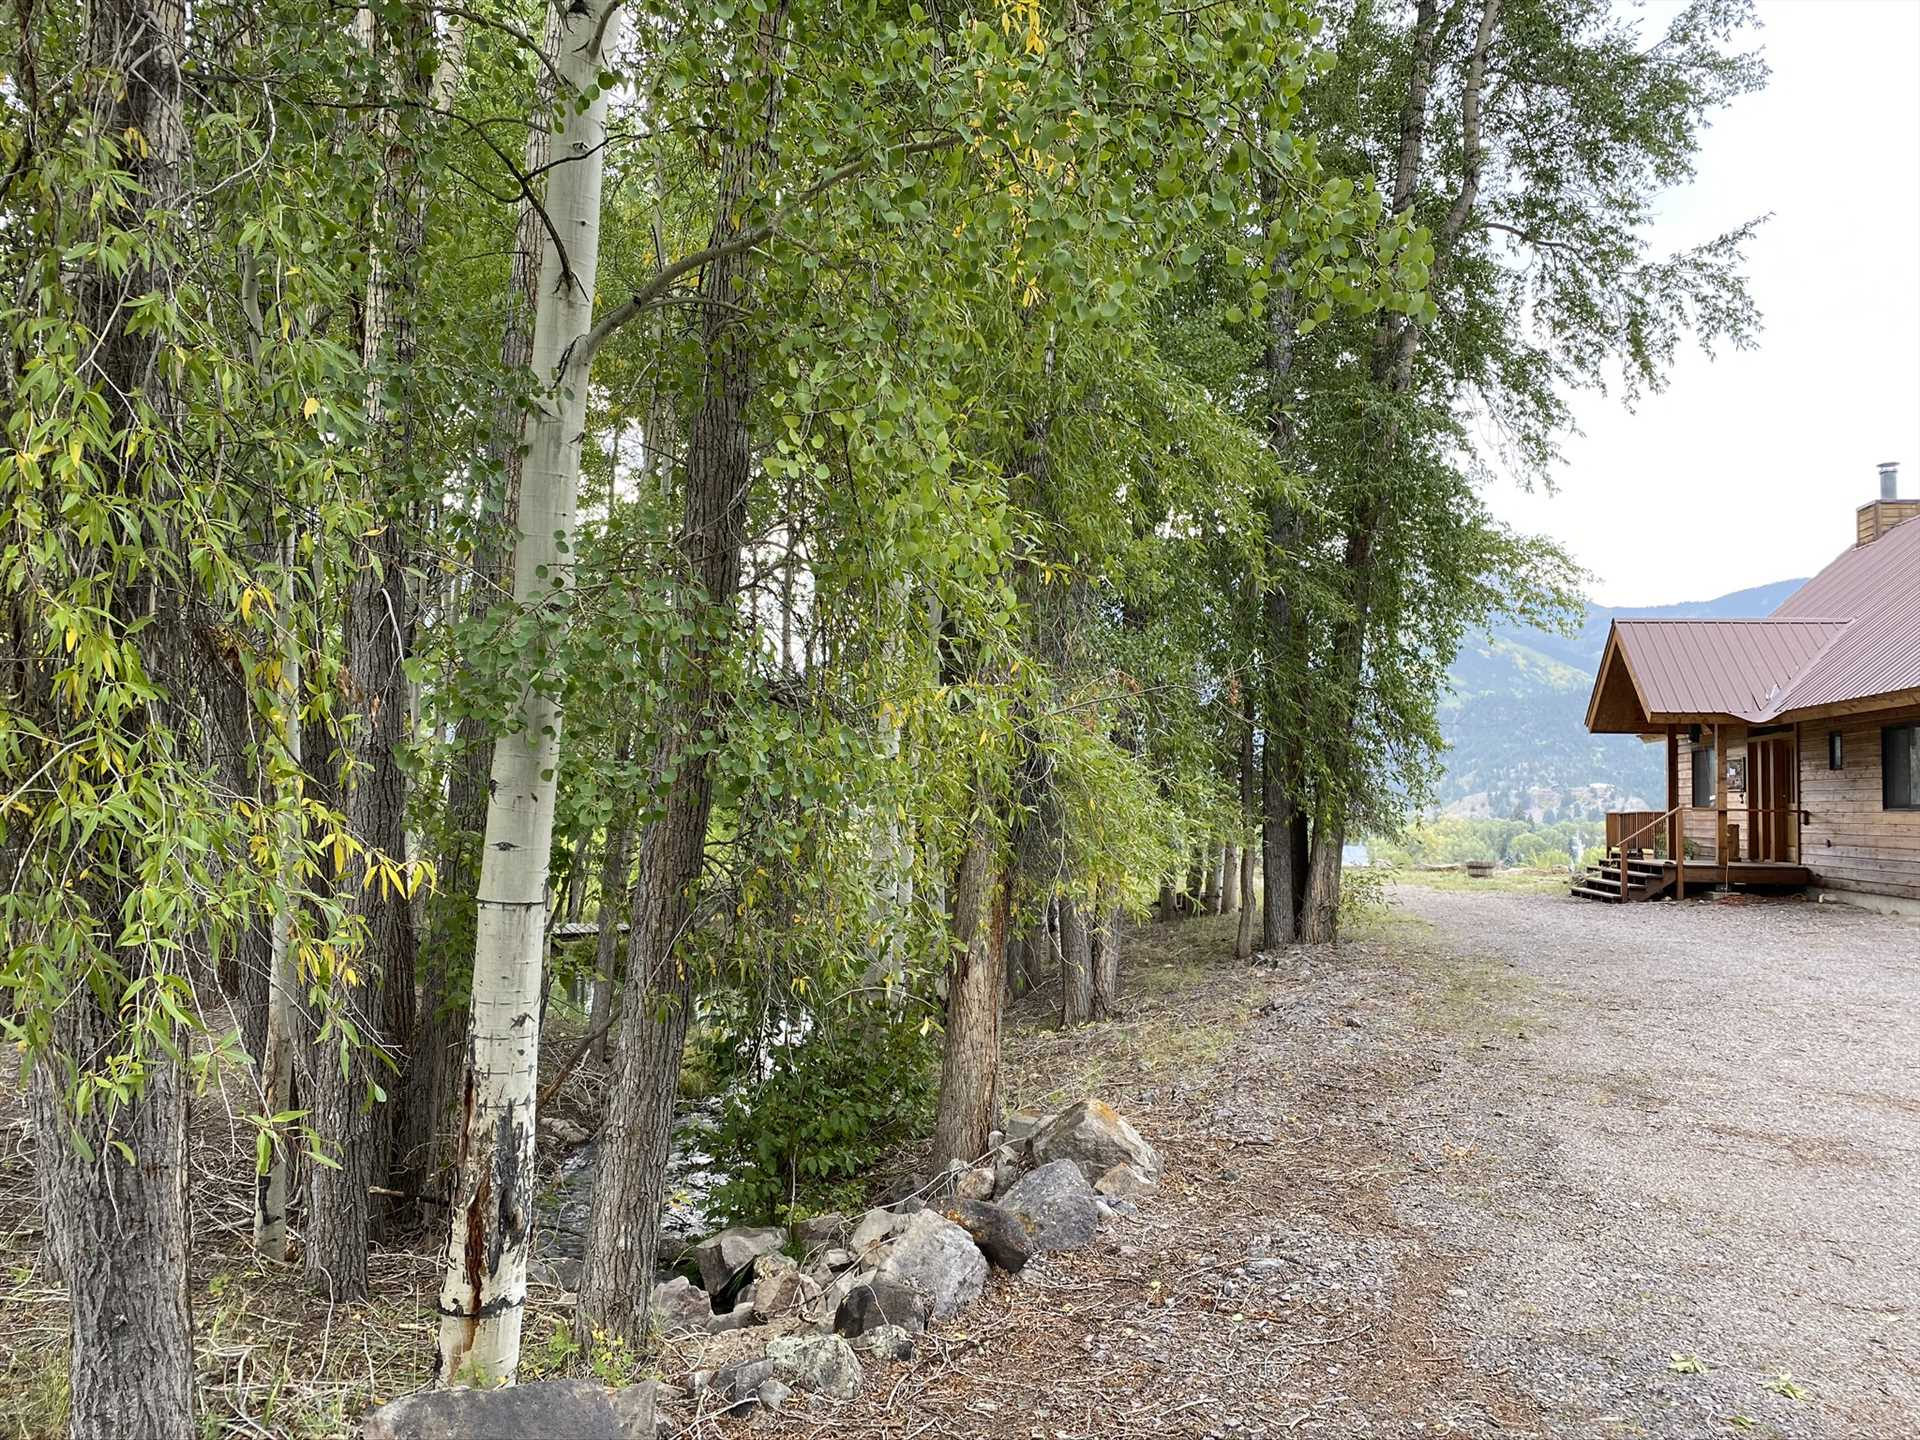 Aspen Trees along the side of the cabin